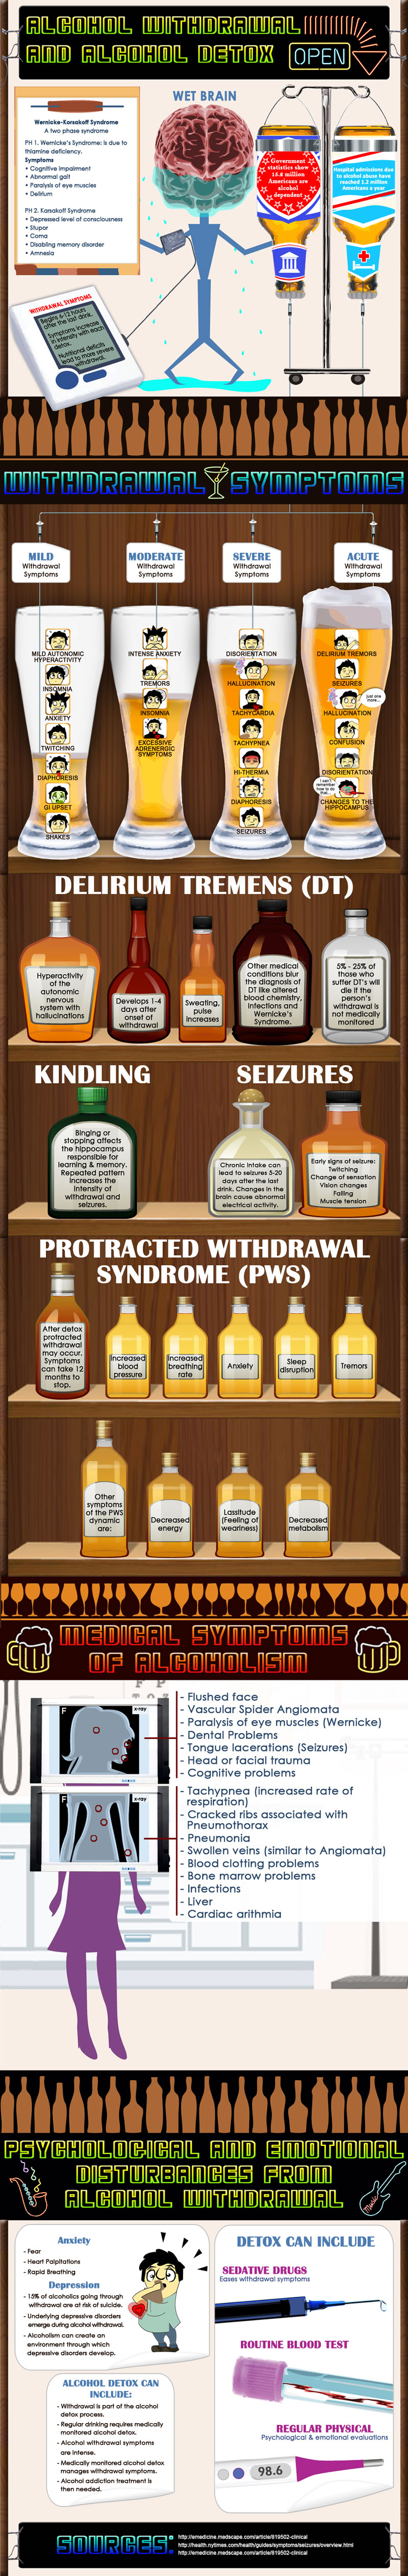 Alcohol withdrawal and alcohol detox